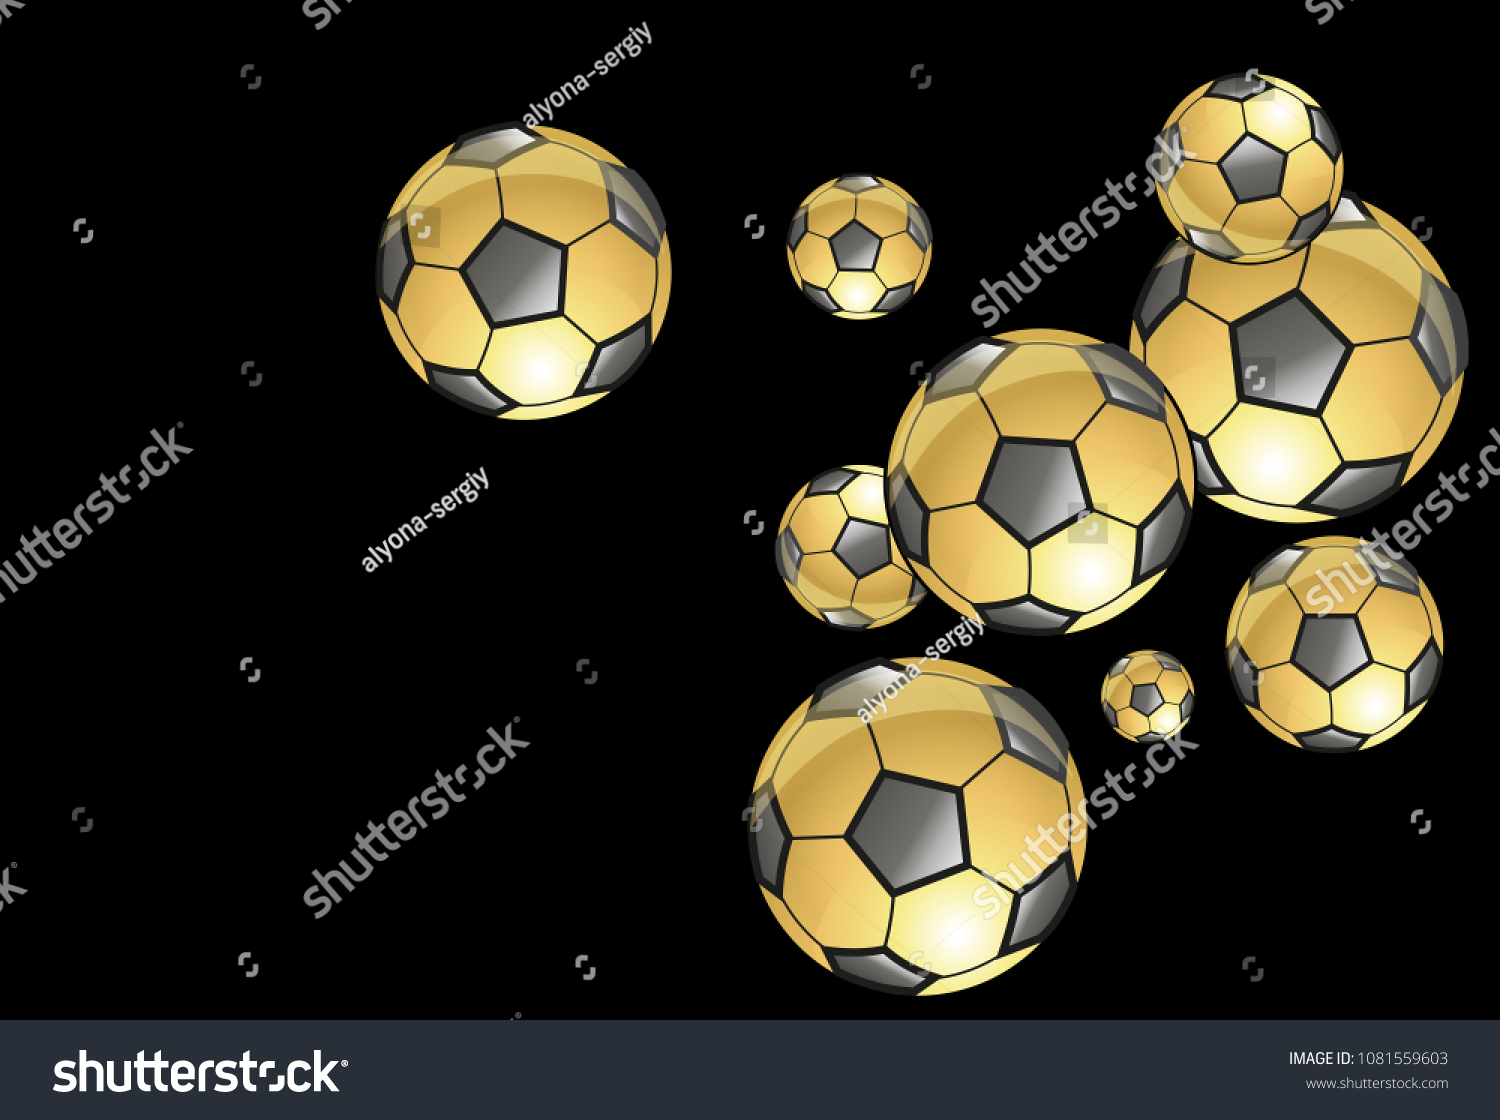 Background Soccer Balls Colorful Sportish Wallpaper Stock Vector Royalty Free 1081559603